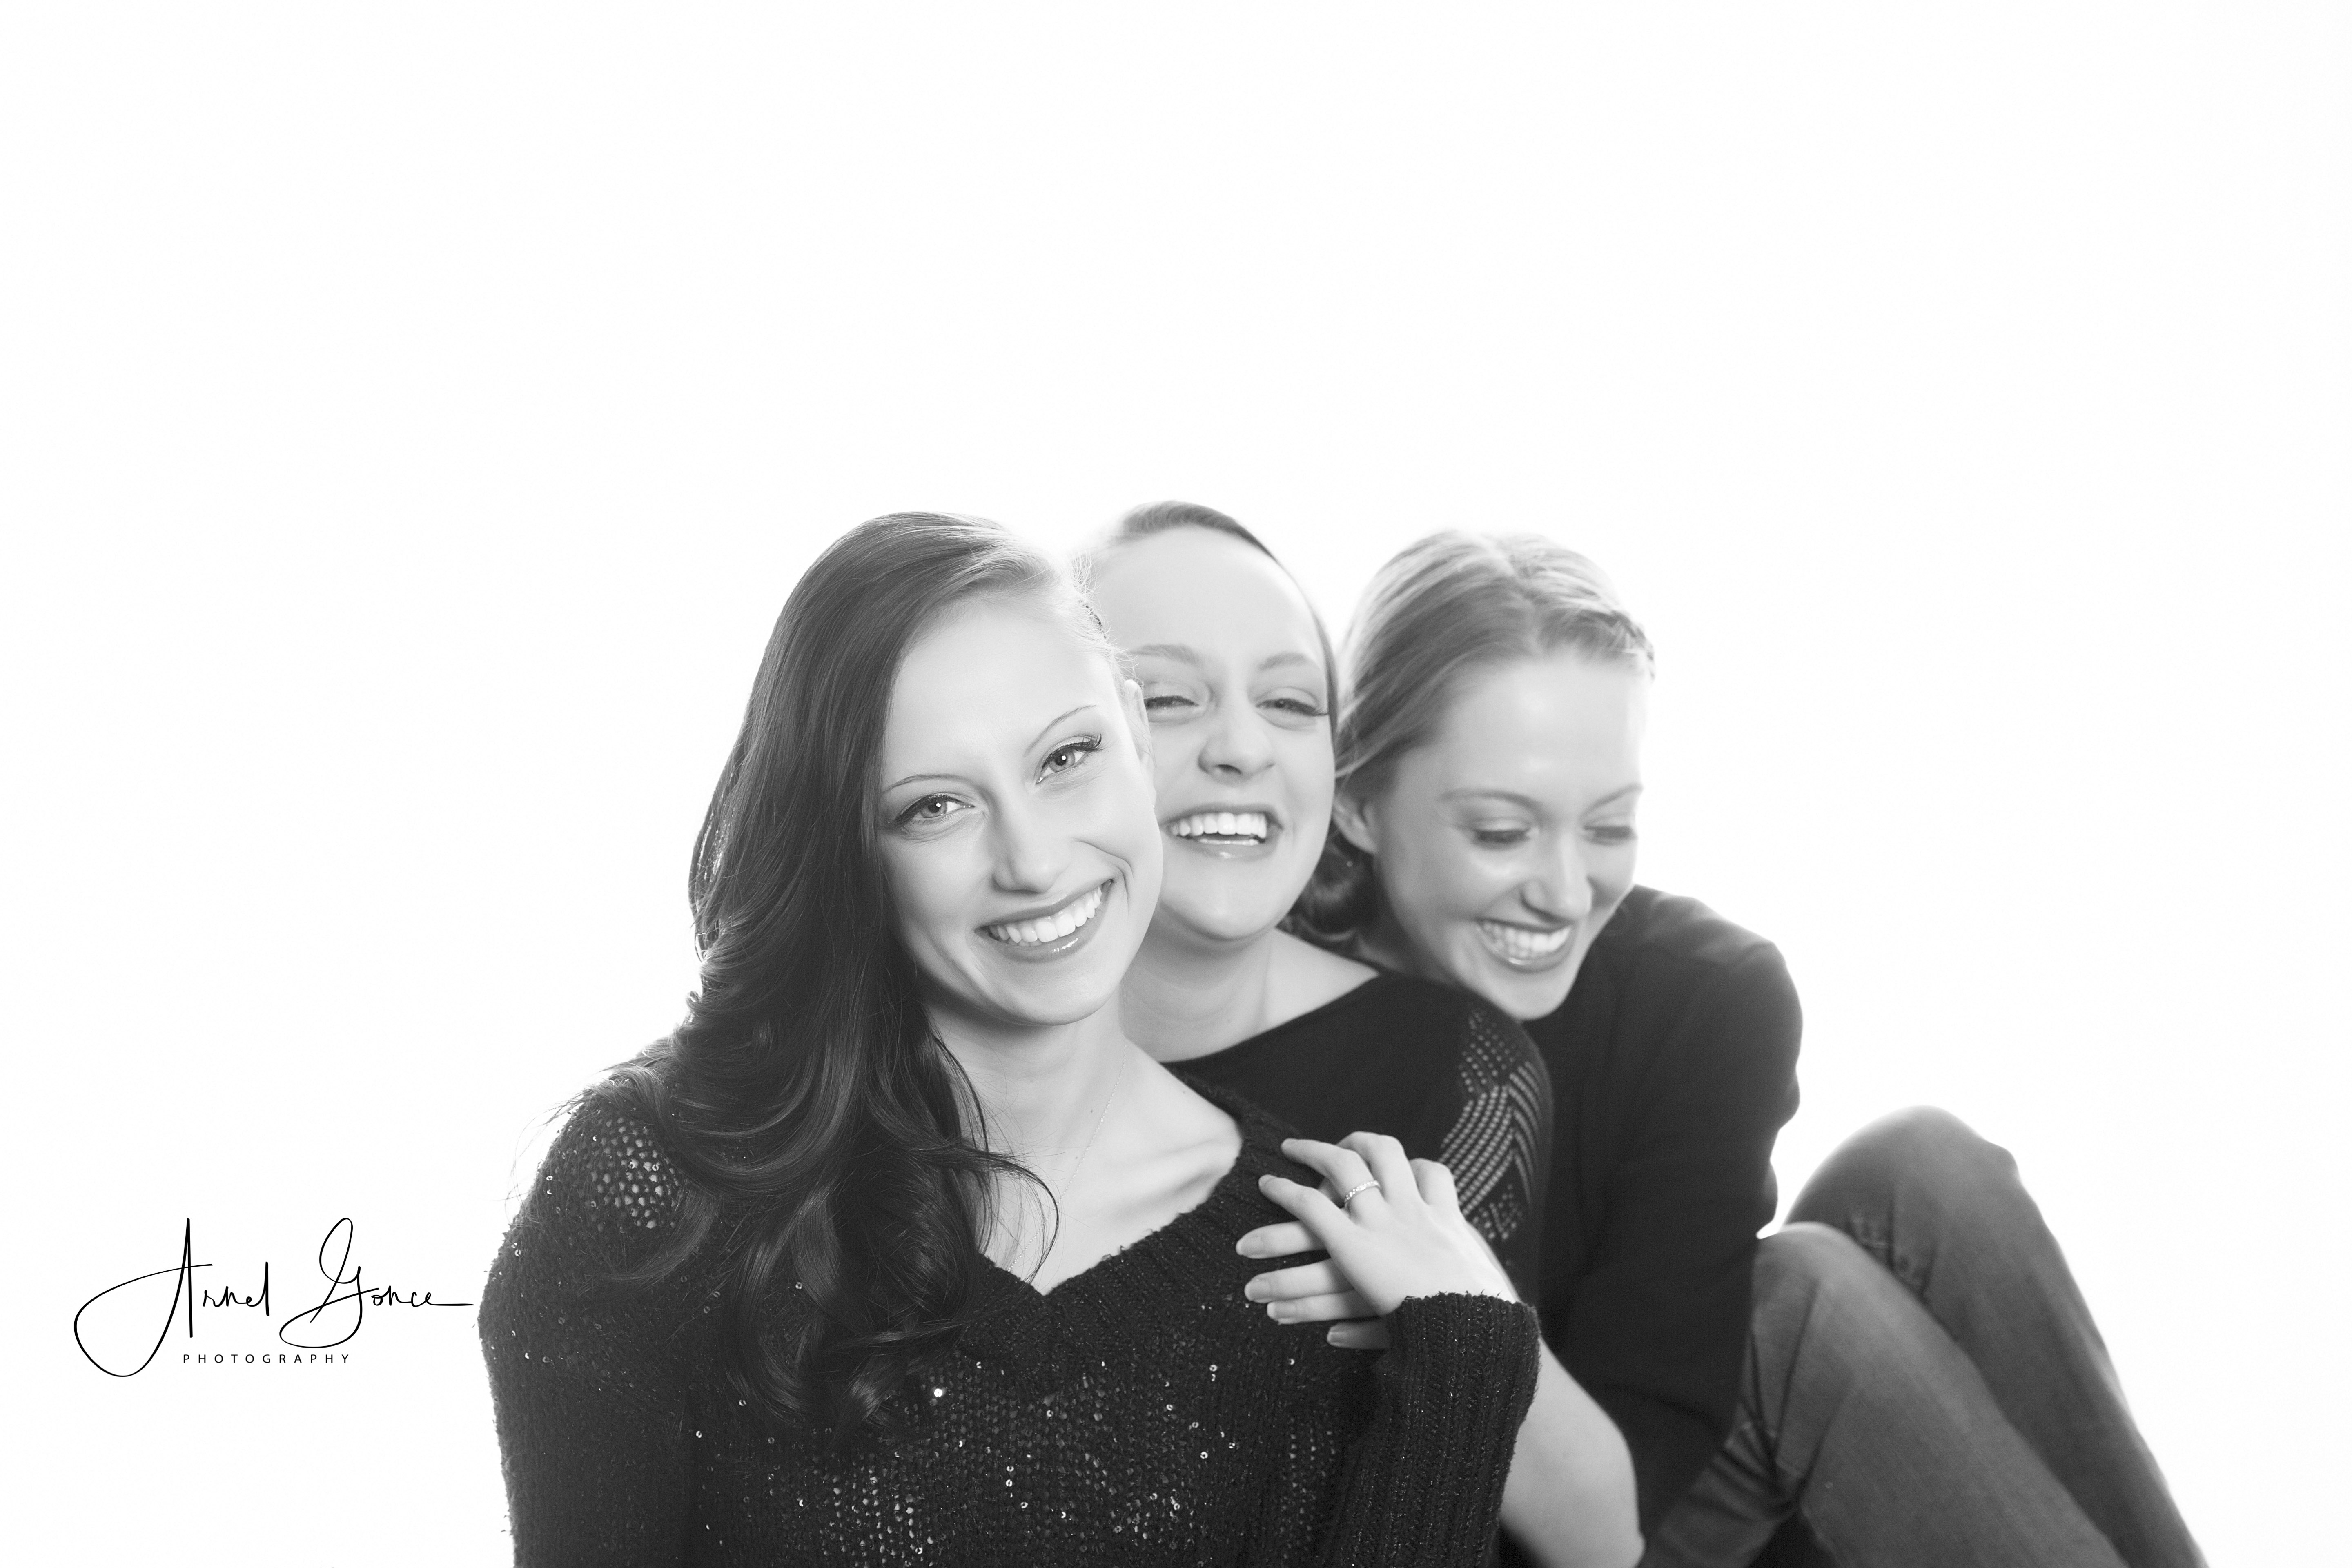 Three sisters in a backlit photograph sitting one in front of another laughing. Black and white image taken in studio and back lit.